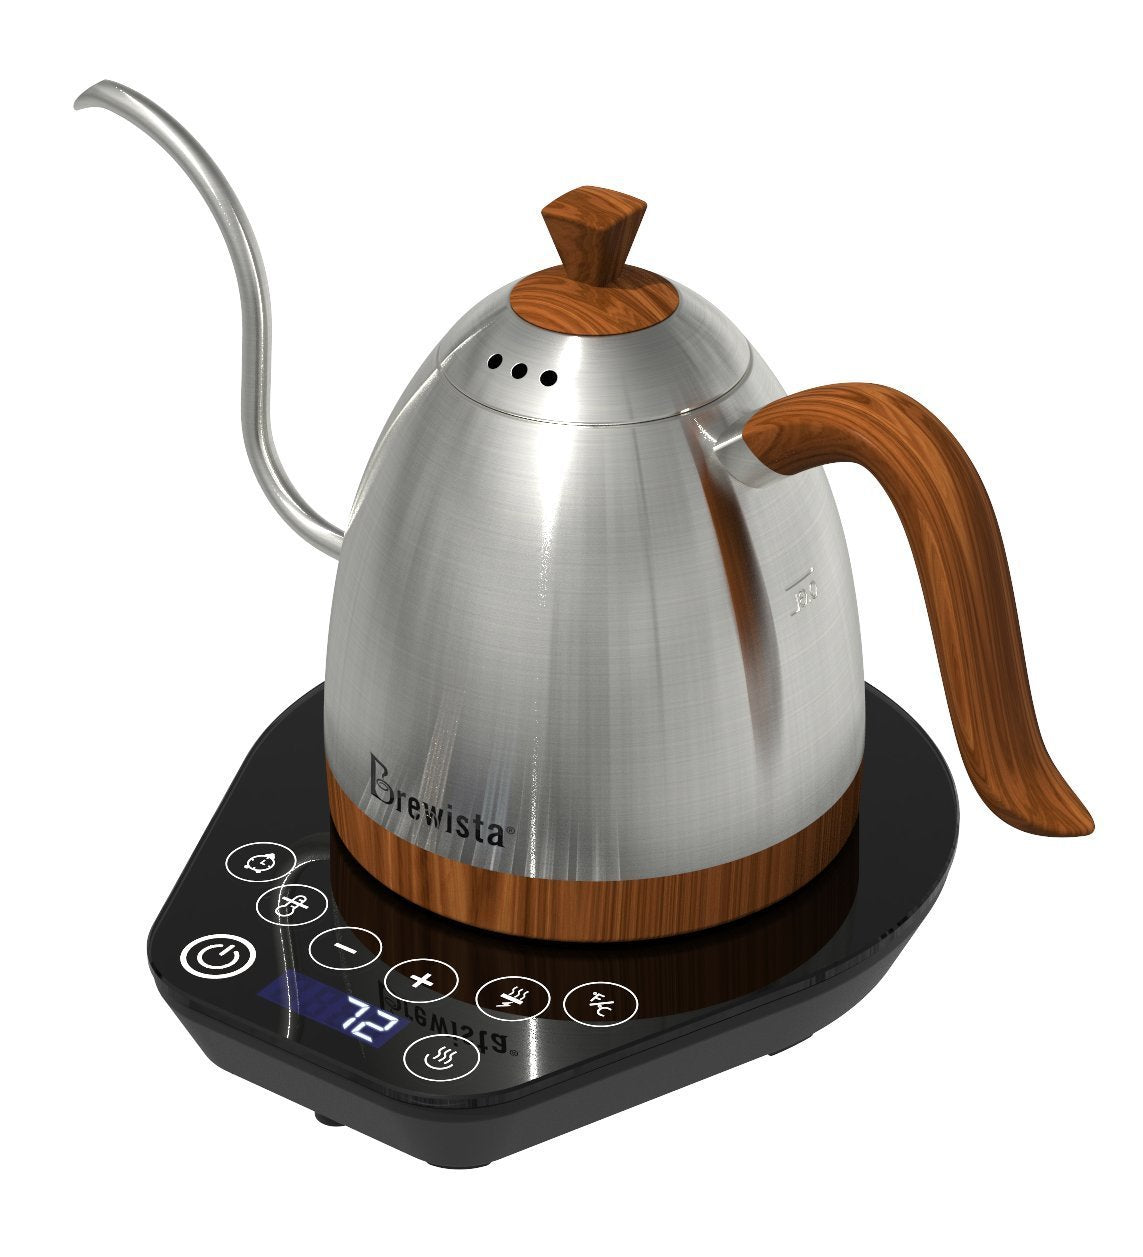 Brewista Artisan 600ml Gooseneck Variable Temperature Kettle - Stainless Steel